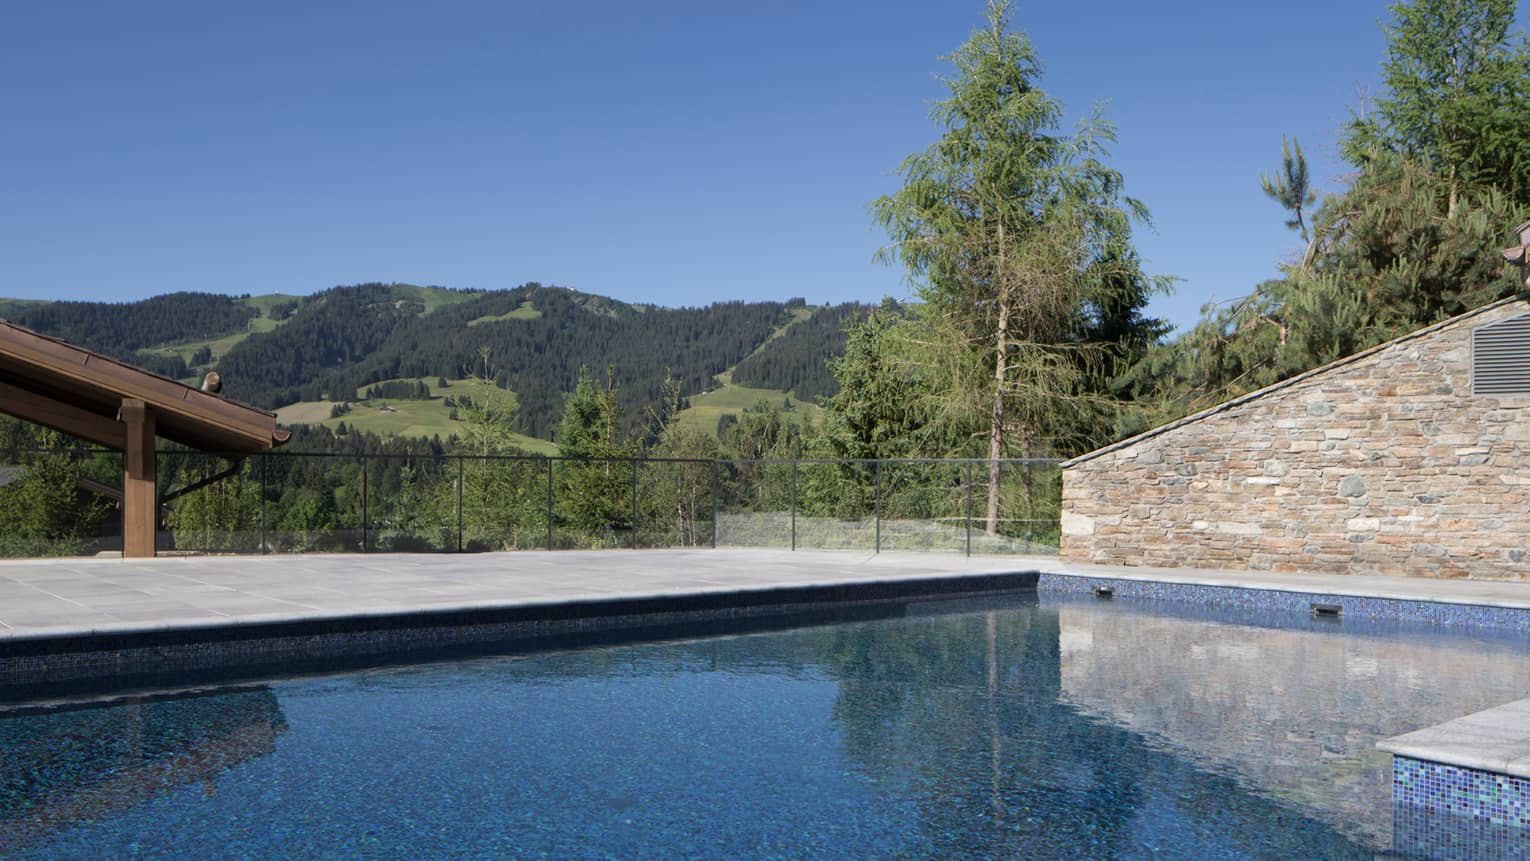 Heated outdoor pool under stone wall, green mountains